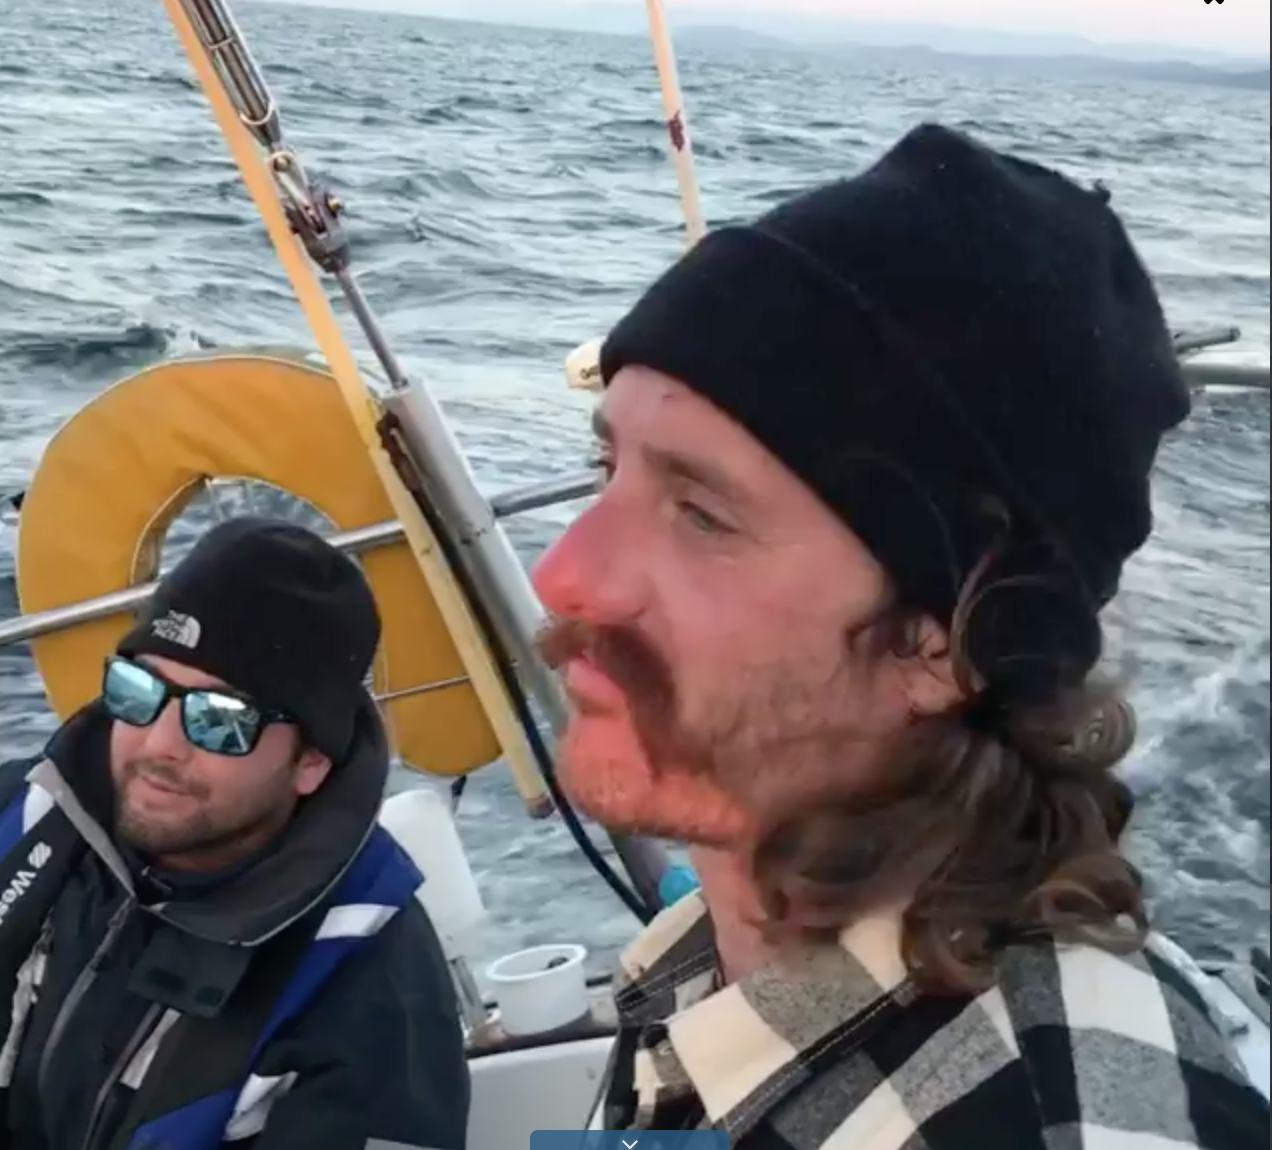 Stay Gold crew members Beau Romero, left, and Willy Kunkle stand watch pushing through the Strait of Juan de Fuca, which leads from Washington's Salish Sea (and Puget Sound) into the Pacific Ocean. (Courtesy of Ashley Bugge)